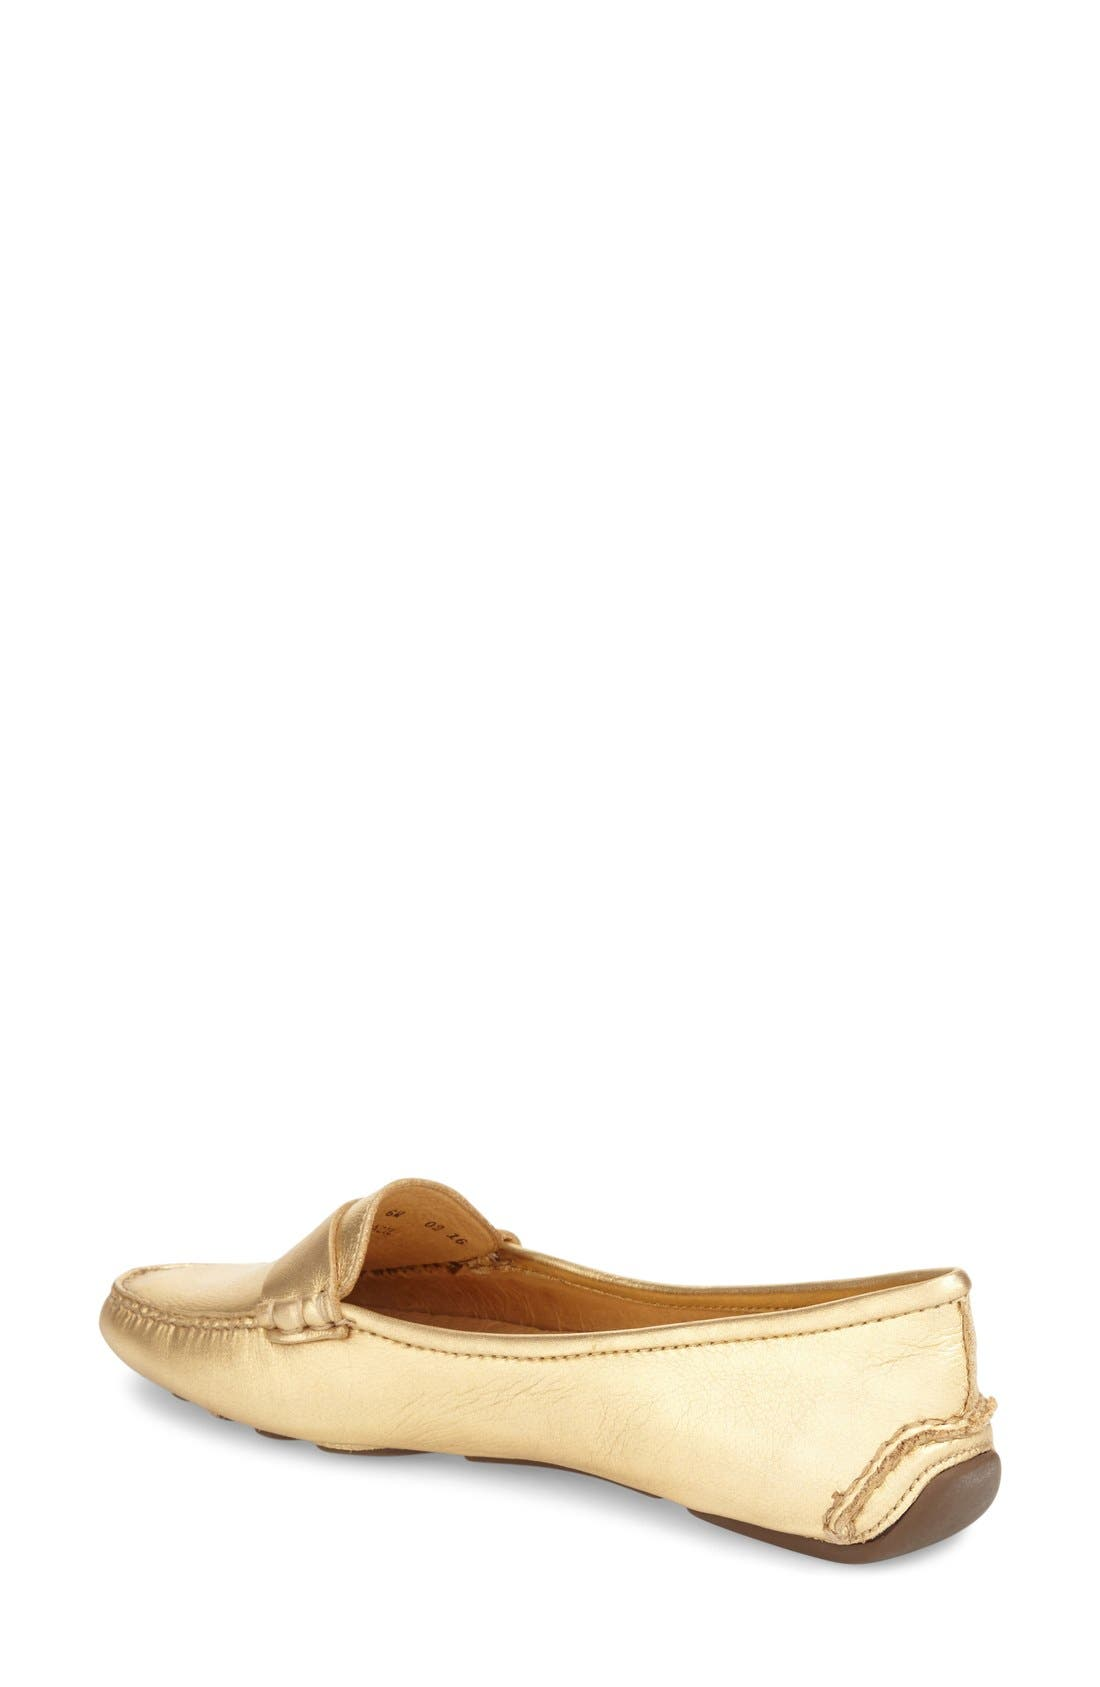 Alternate Image 2  - patricia green 'Bristol' Penny Loafer (Women)